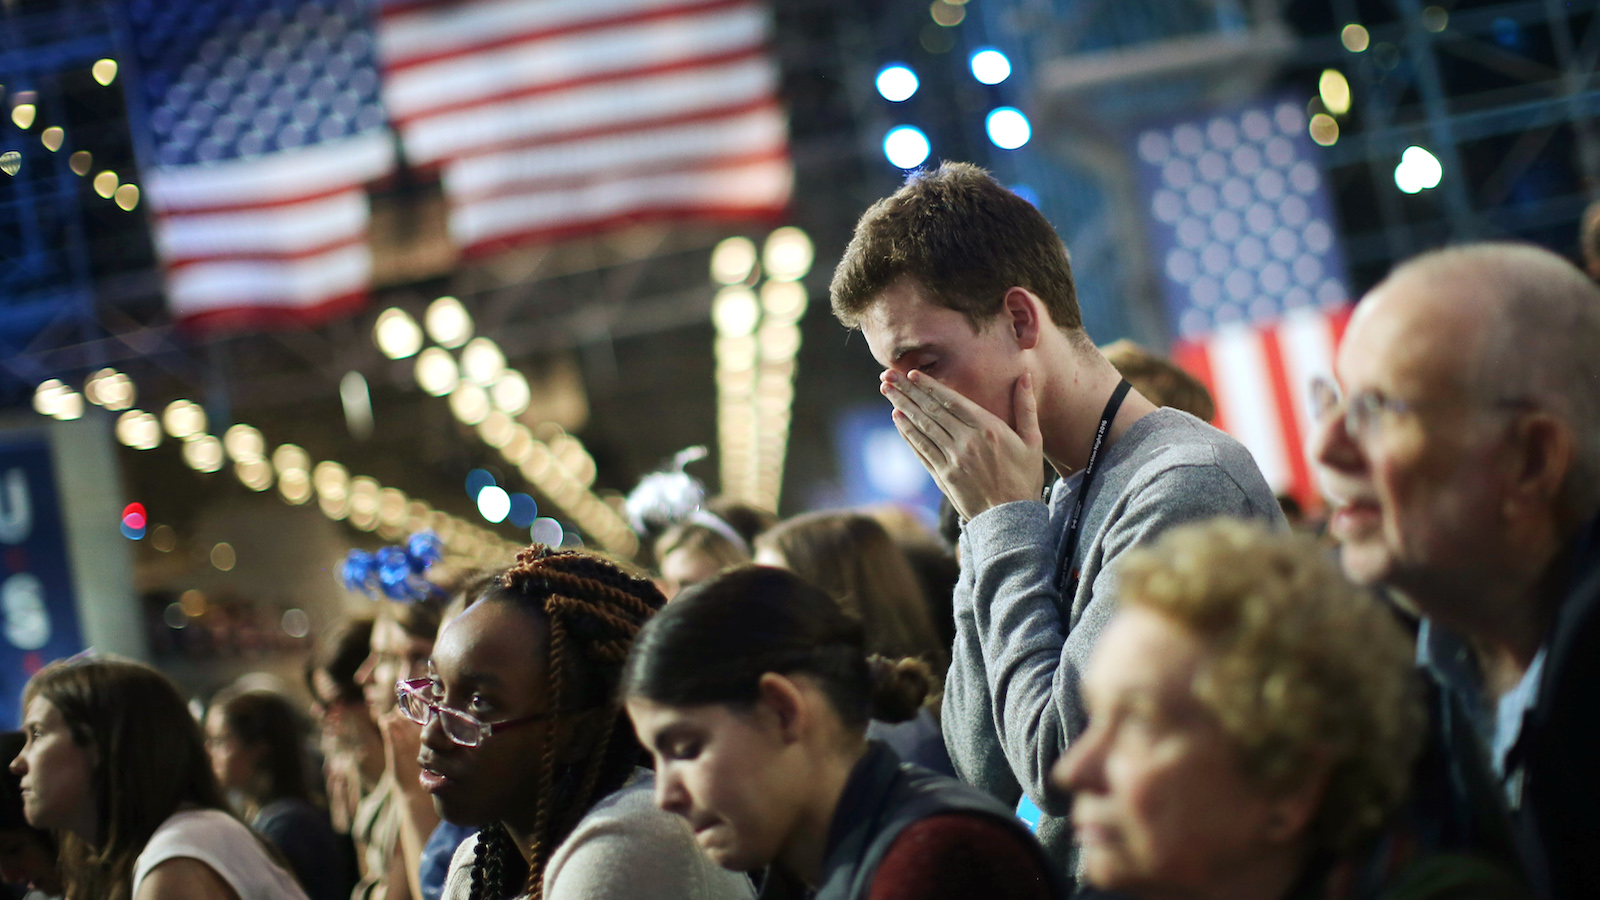 Supporters of Democratic U.S. presidential nominee Hillary Clinton watch state by state returns at her election night rally in New York, U.S., November 8, 2016. REUTERS/Carlos Barria      TPX IMAGES OF THE DAY  - RTX2SO8N